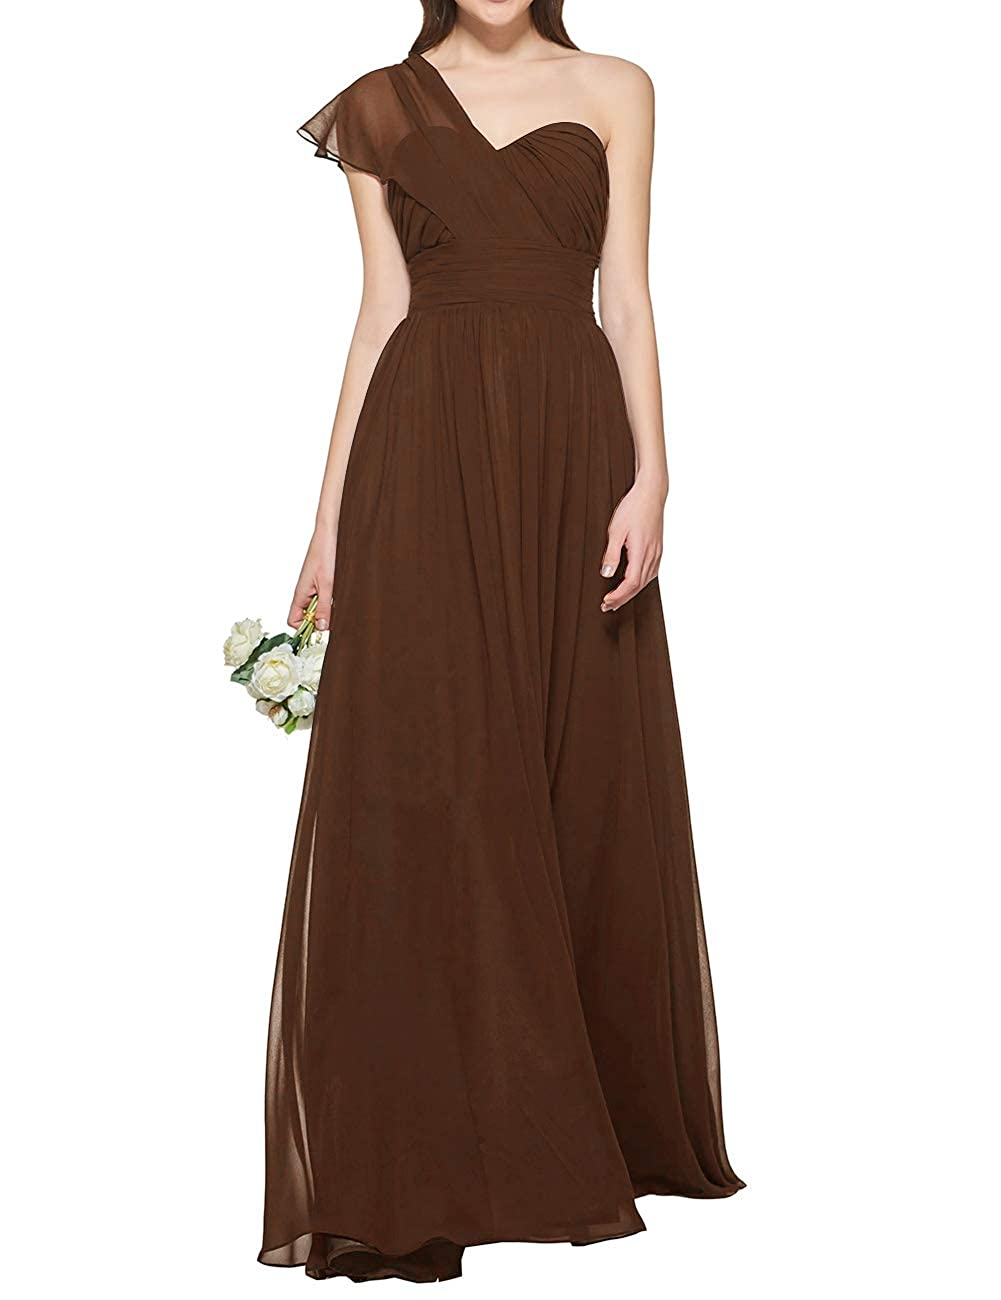 Chocolate Uther Women's One Shoulder Bridesmaid Dress Long Prom Evening Gown A Line